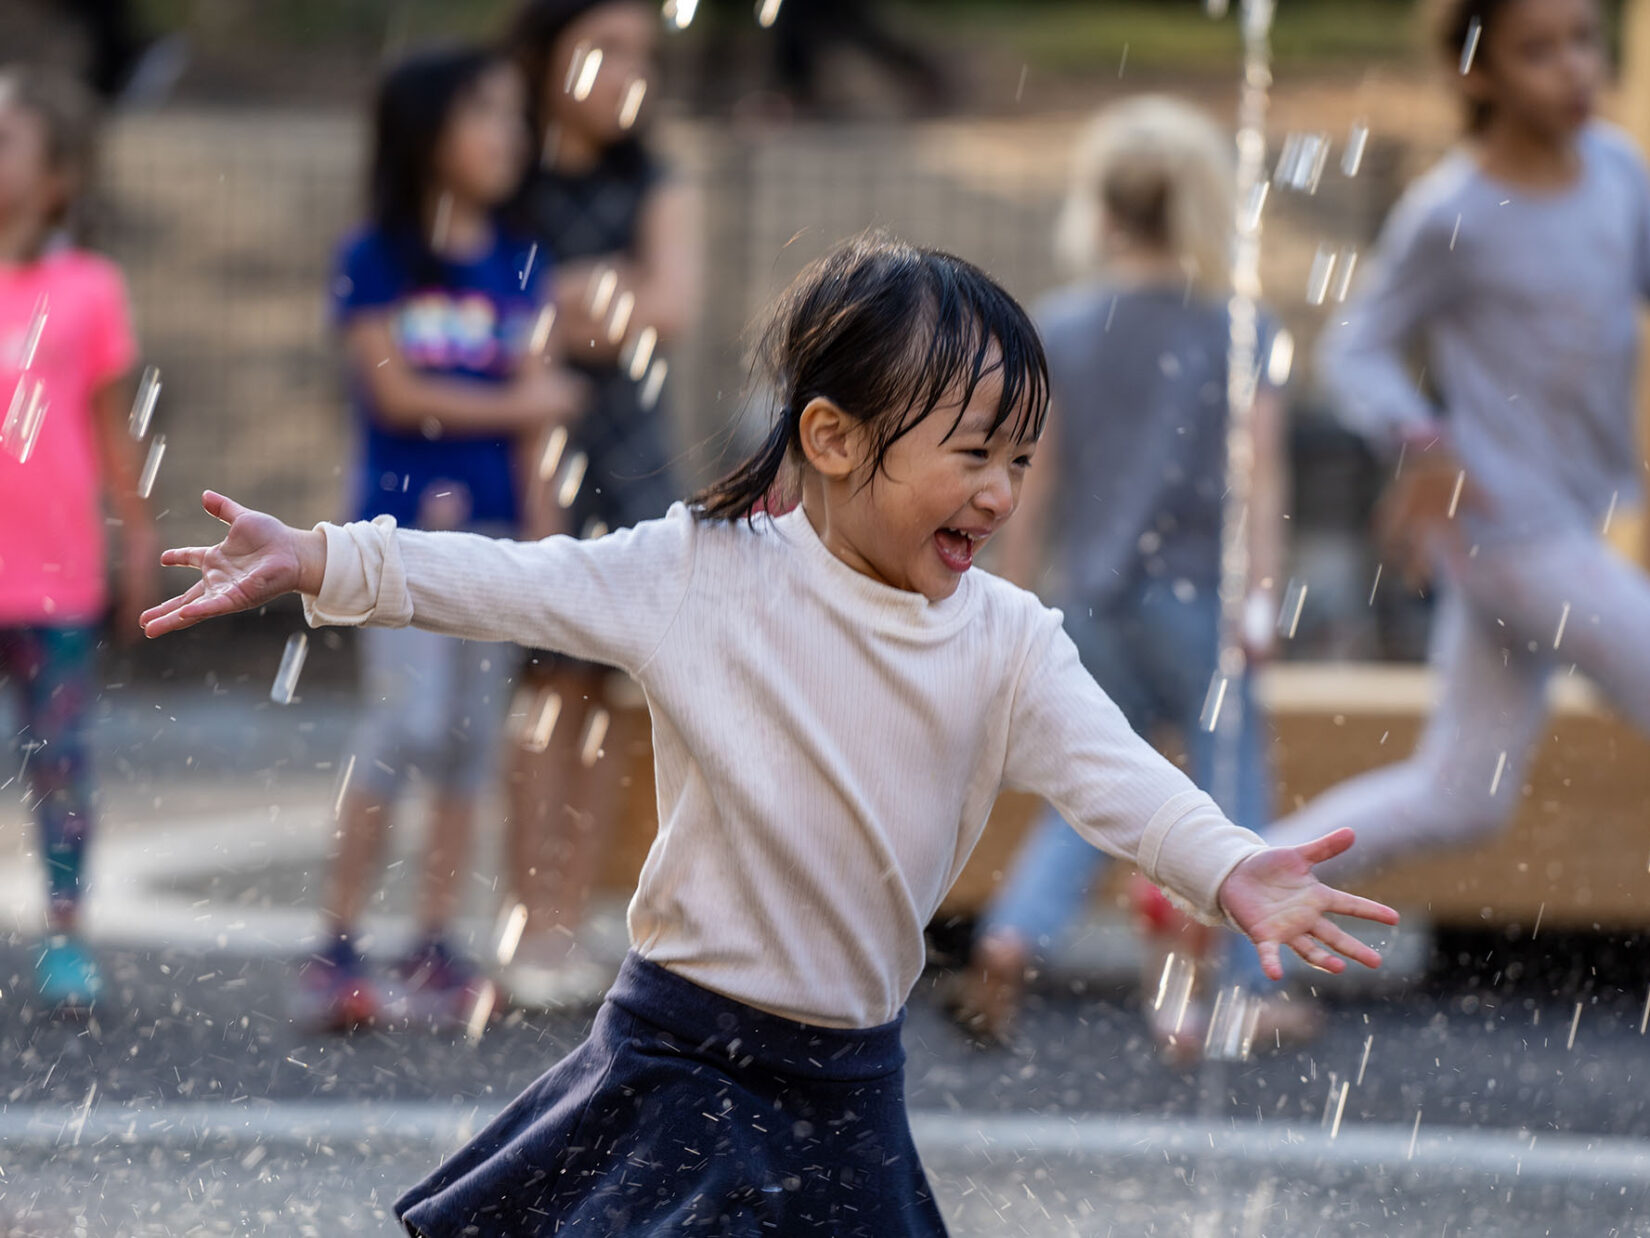 A young girl runs joyfully through the spray of a fountain